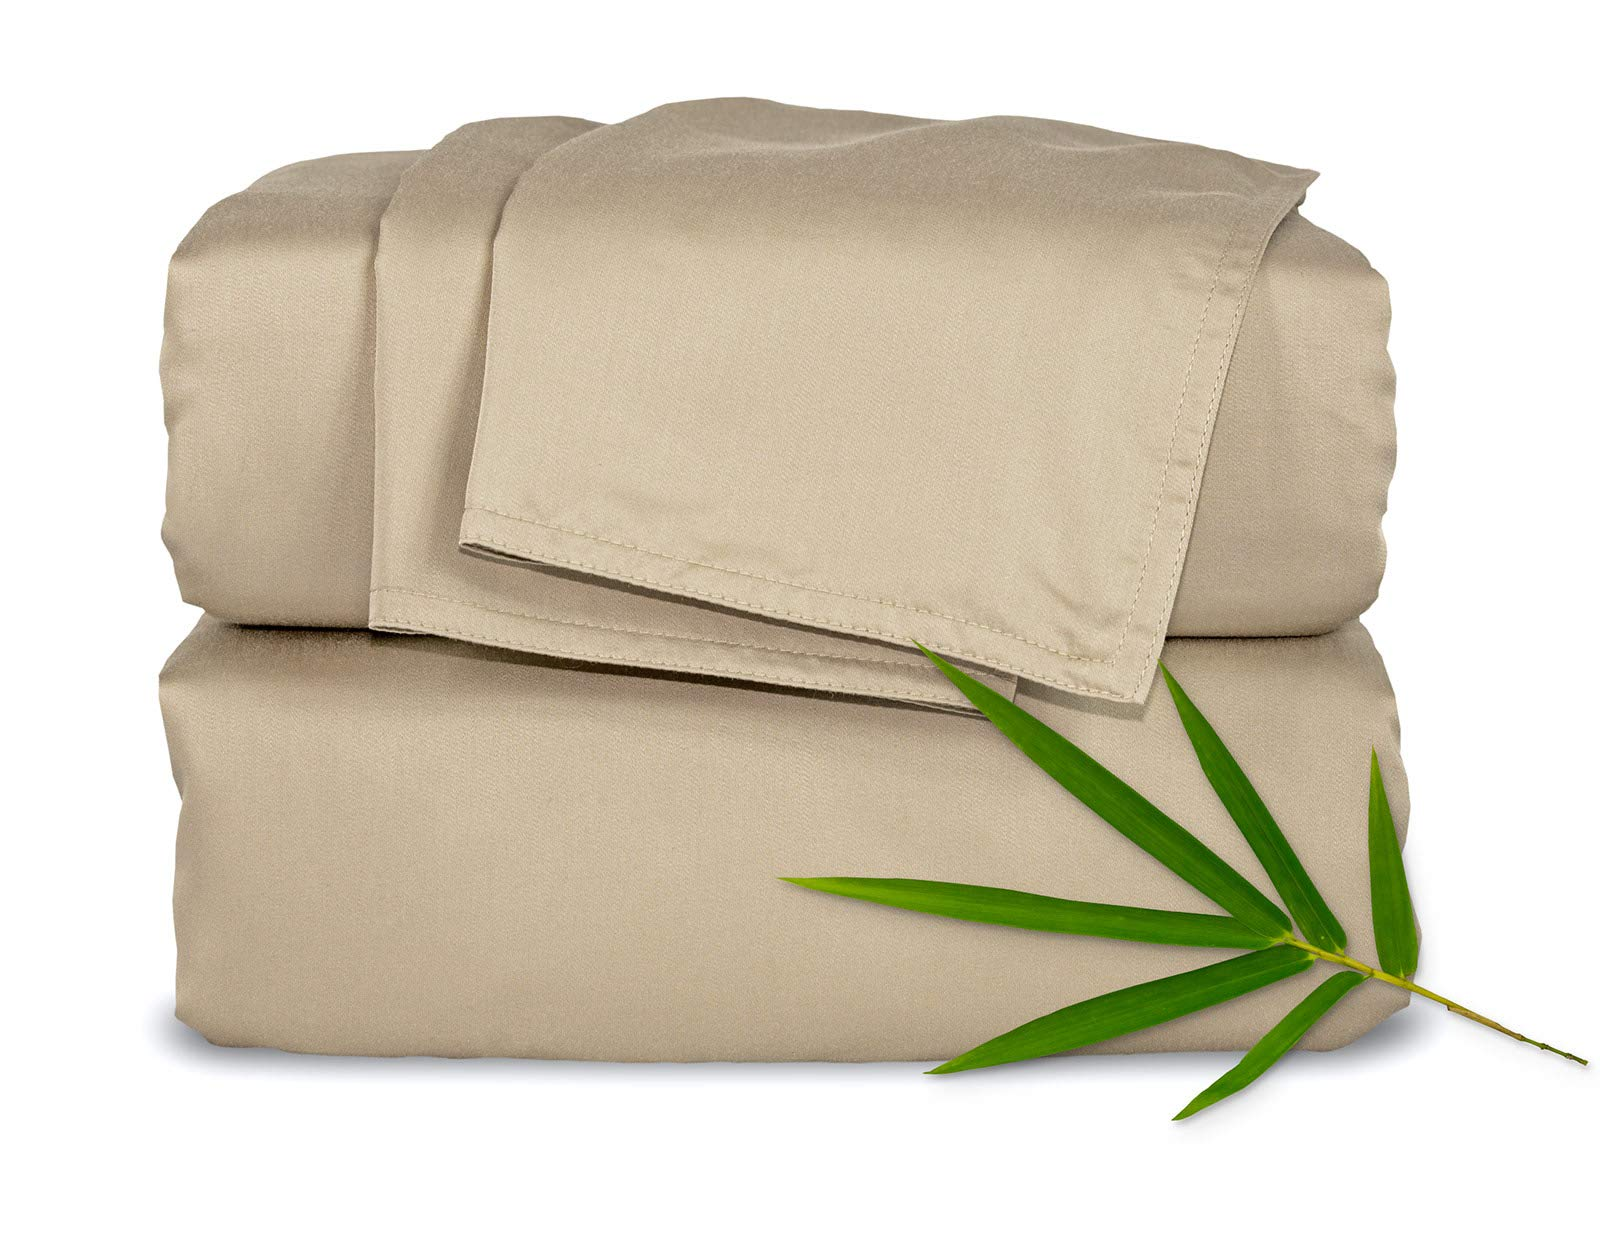 "Pure Bamboo Sheets Short Queen Sheets for RV or Camper (60""x75"") - 100% Bamboo Luxuriously Soft Bed Sheets (Sand) - ✔️ MADE FROM THE HIGHEST QUALITY ORGANIC PURE BAMBOO - Never blended with others fabrics or fibers ✔️ SHORT QUEEN 60""X75"" BEDDING SET INCLUDES: 1 fitted sheet, 1 flat sheet and 2 queen size envelope-style pillowcases -All with double-stitched seams ✔️ DEEP POCKETS FIT UP TO 16"" MATTRESS - Fitted sheet has deep pockets, a fully elasticized bottom and box fit stitching, ensuring a perfect snug fit that stays neatly in place - sheet-sets, bedroom-sheets-comforters, bedroom - 71PFGehOFZL -"